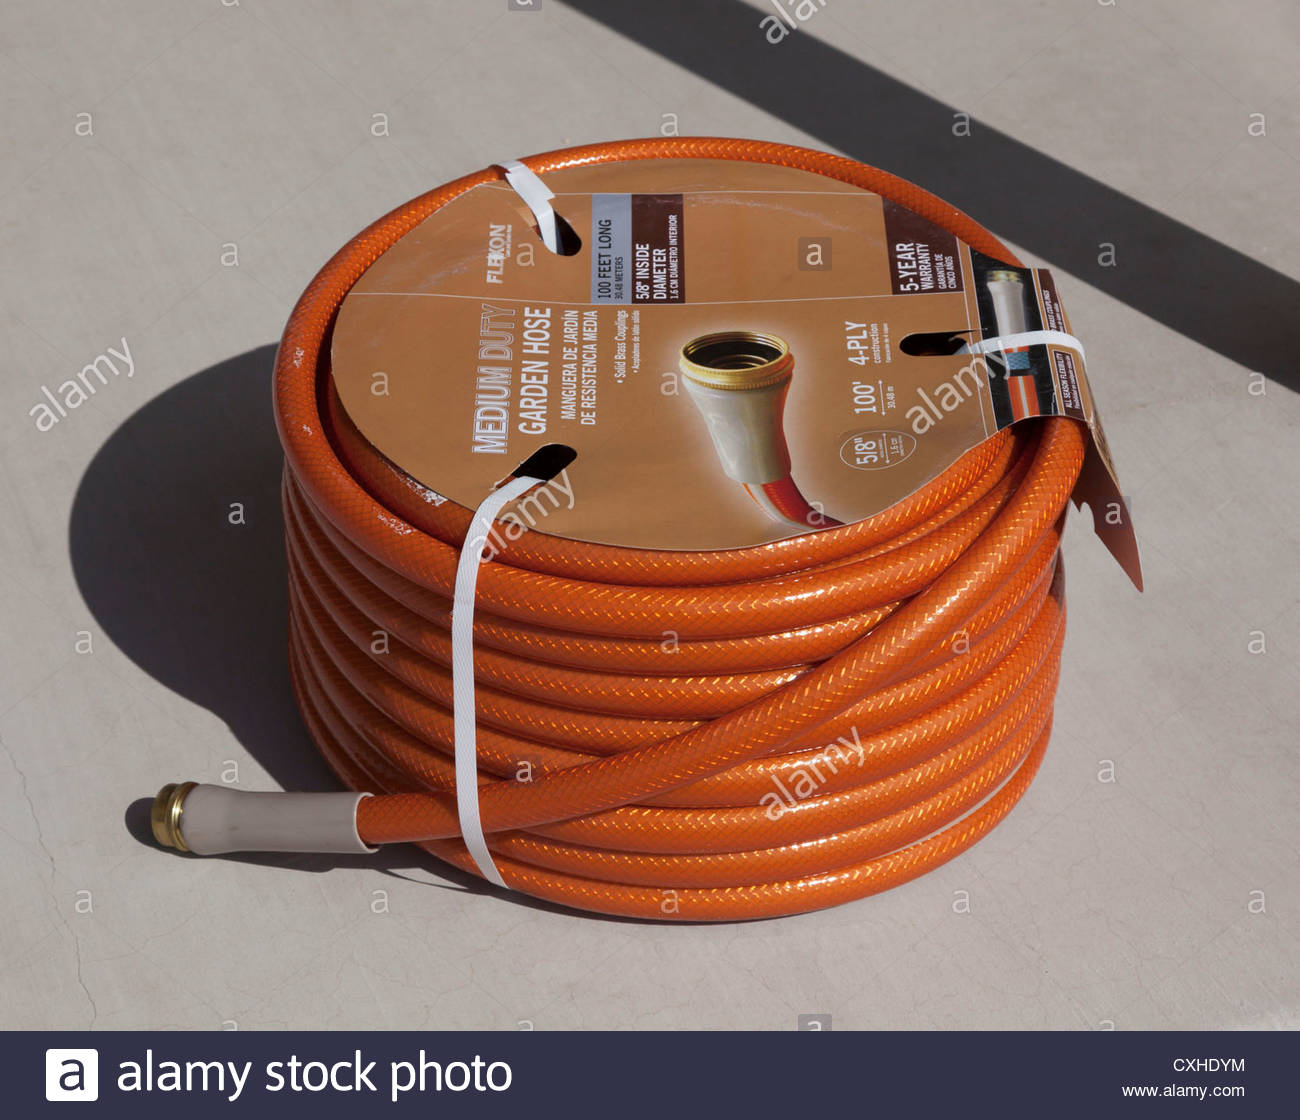 New 100 foot roll of garden hose copper colored on concrete label ...